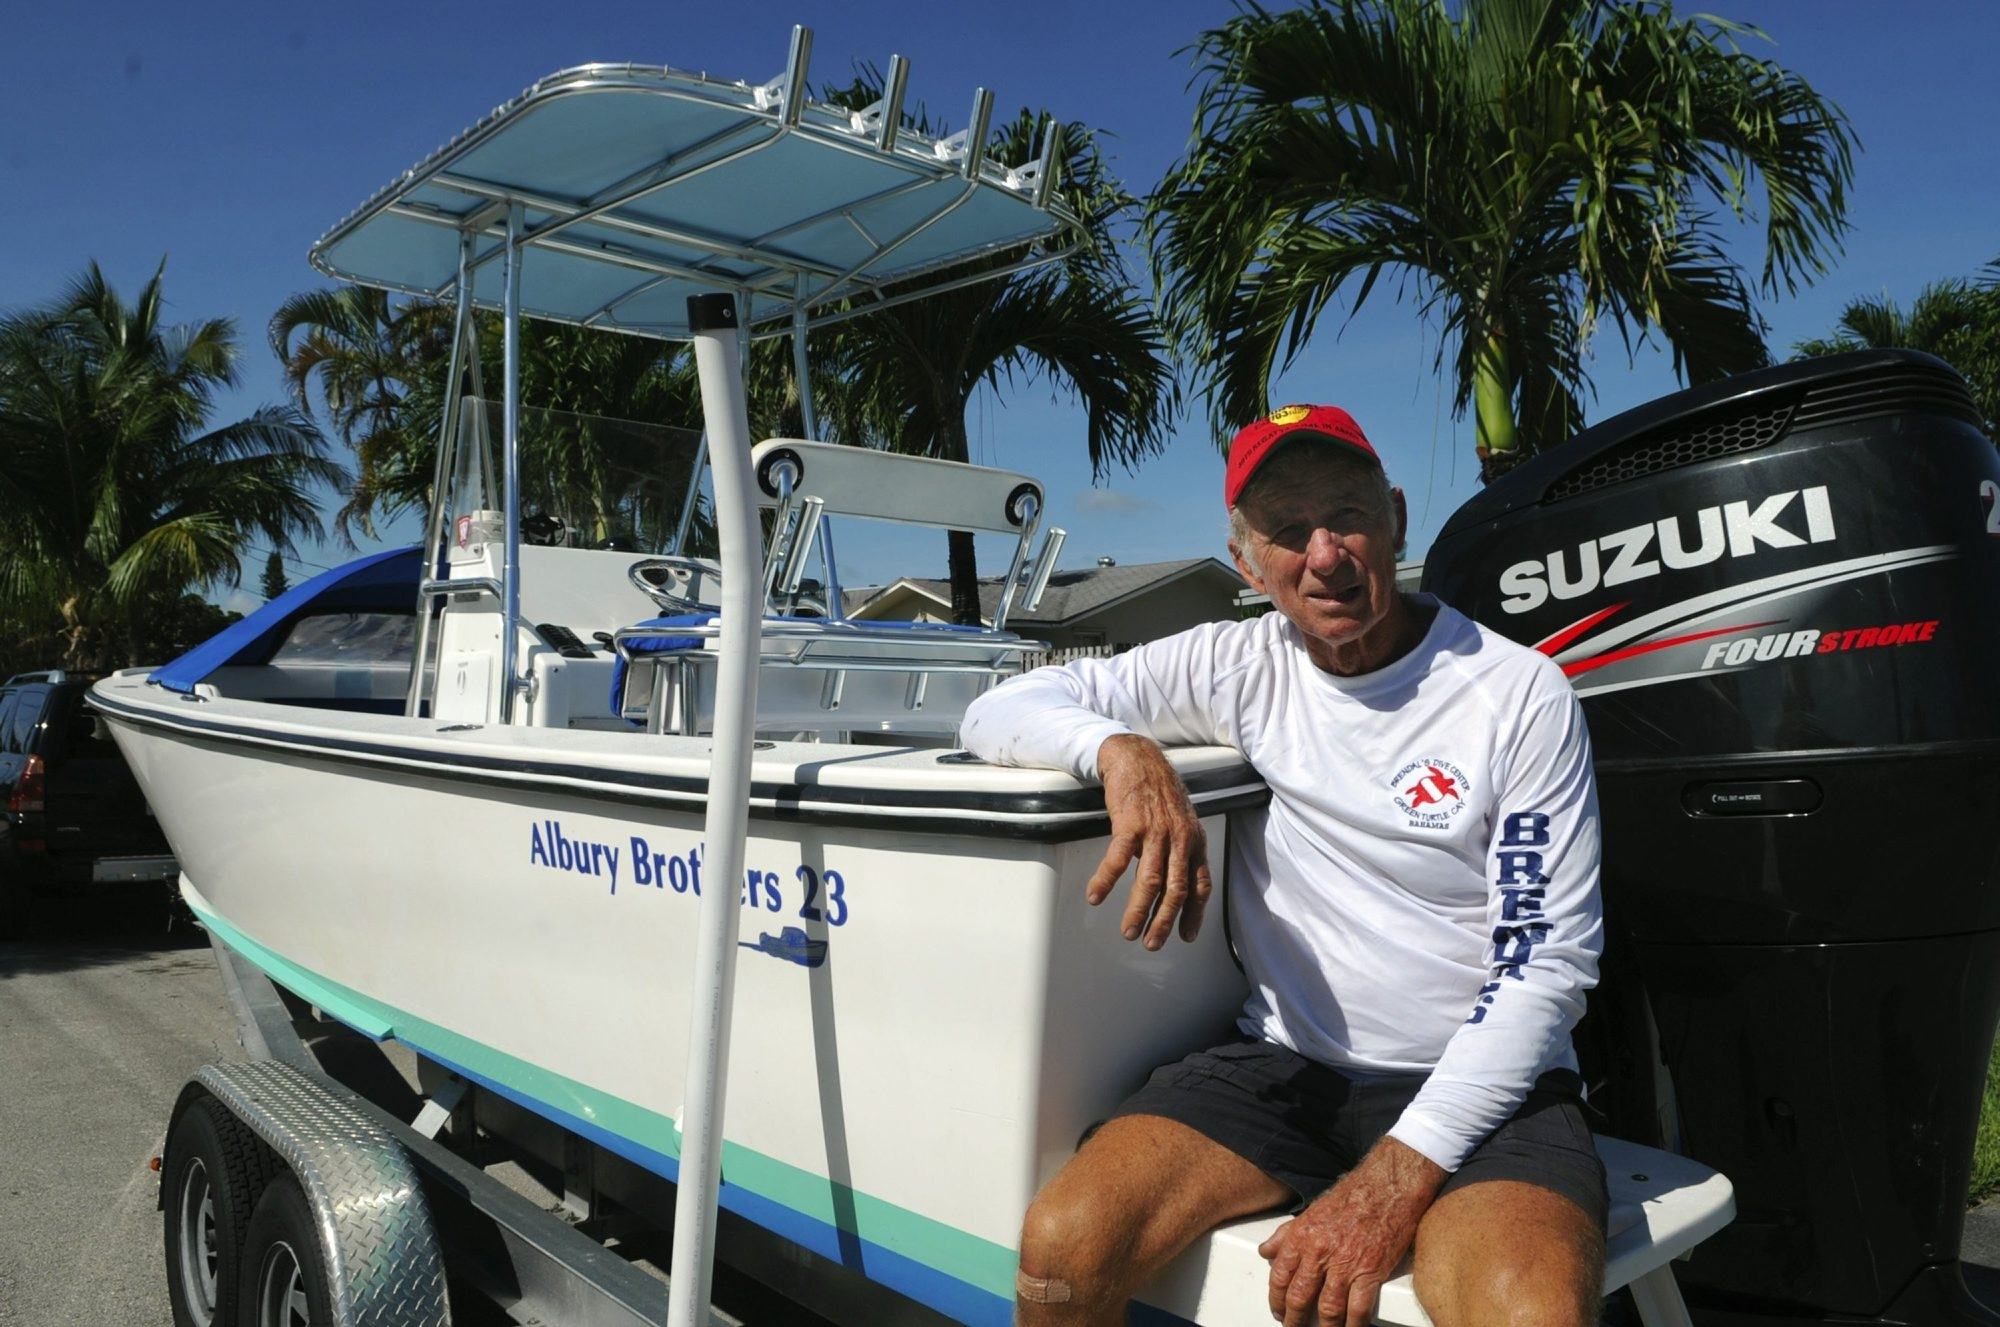 Tom Dwyer is an avid boater who rents his two Albury Brothers boats through a website called Cruzin.com.